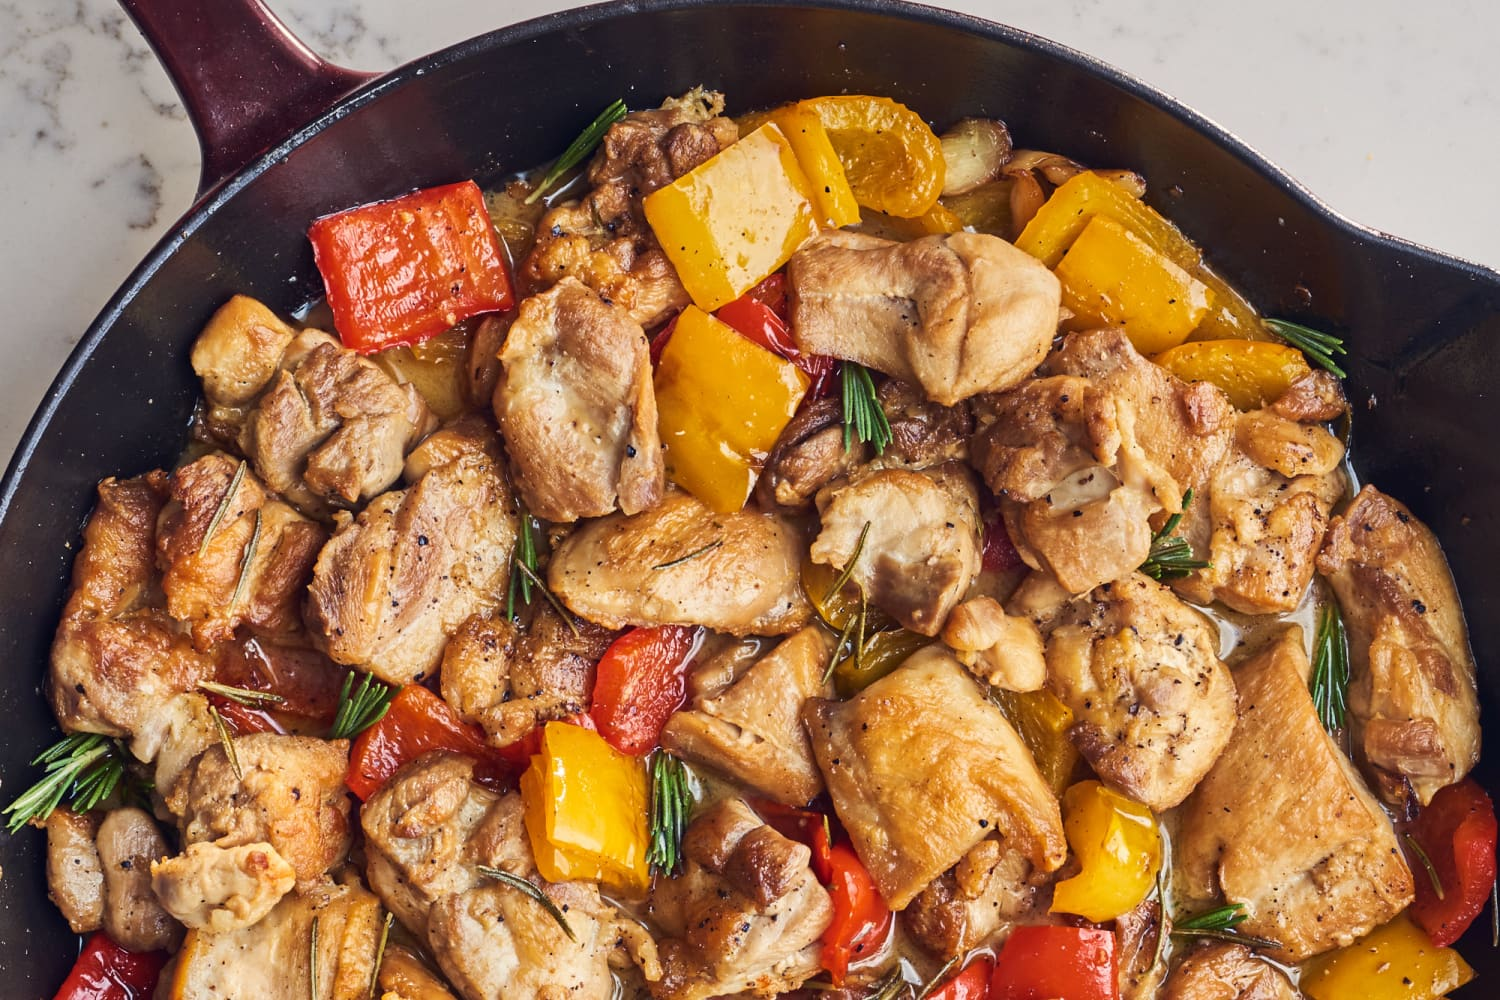 The Italian Chicken Dinner I Make Over and Over Again for My Family